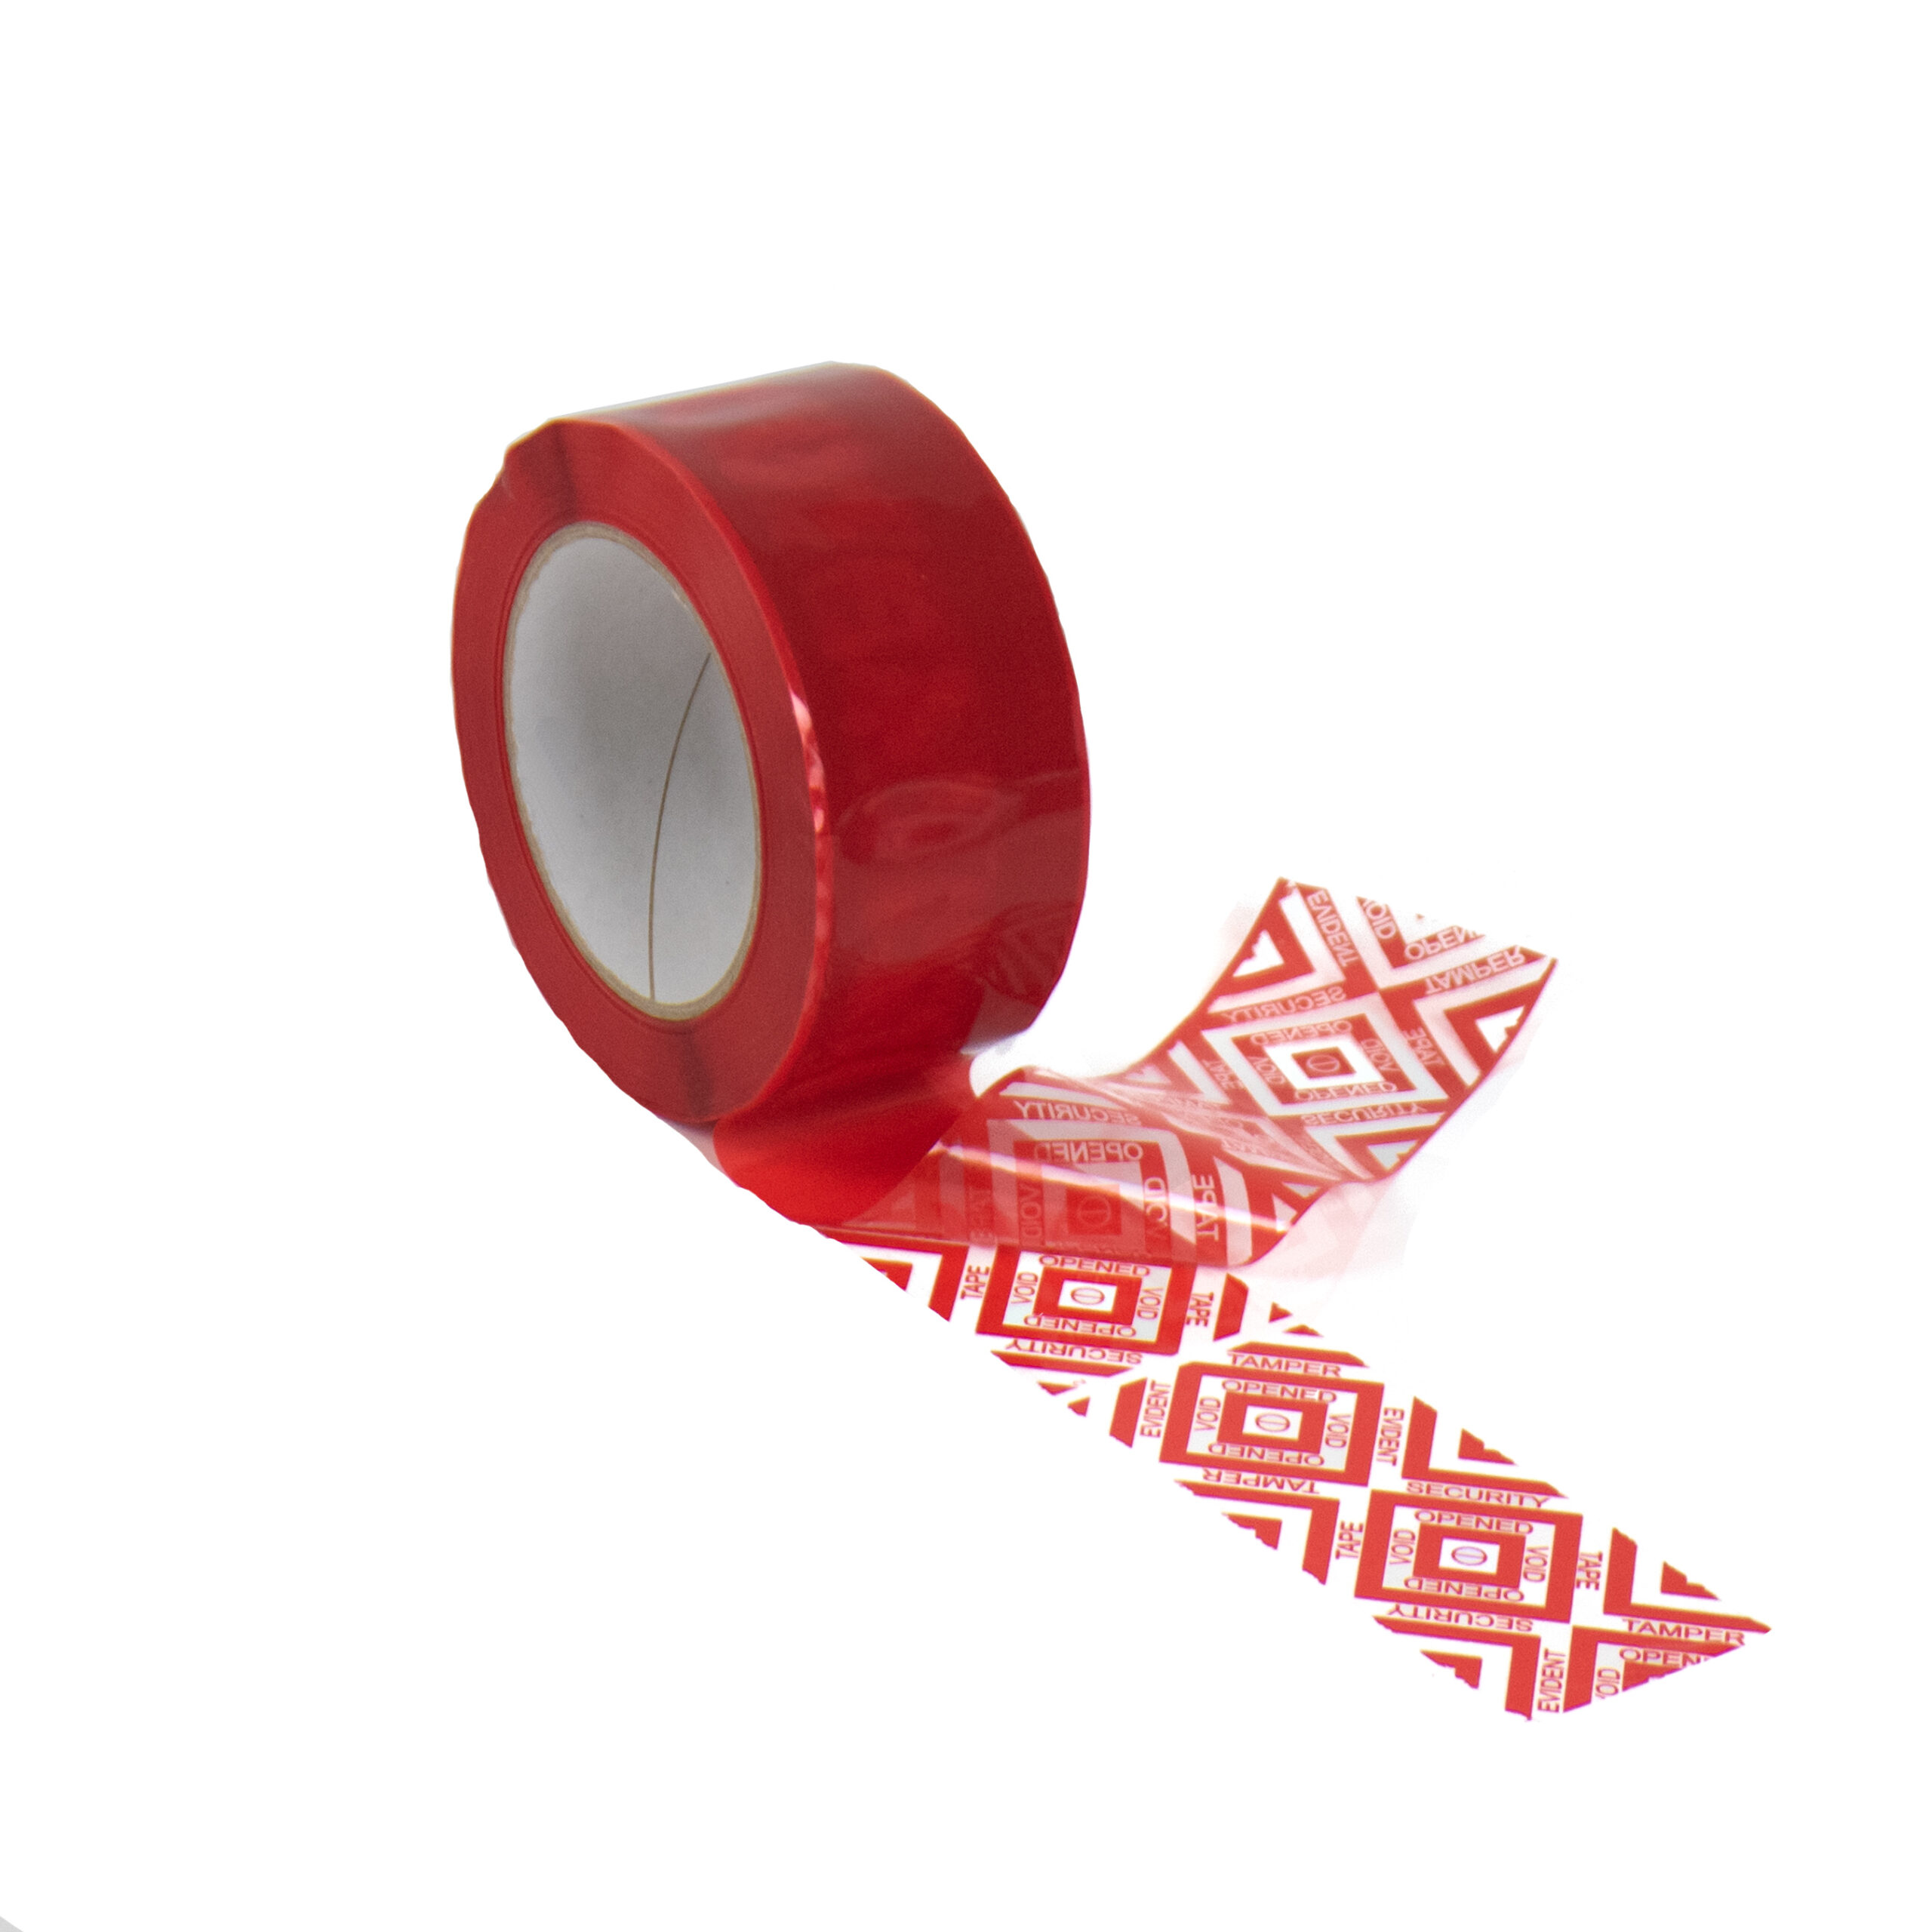 red covert tamper evident security box tape with new standard void pattern